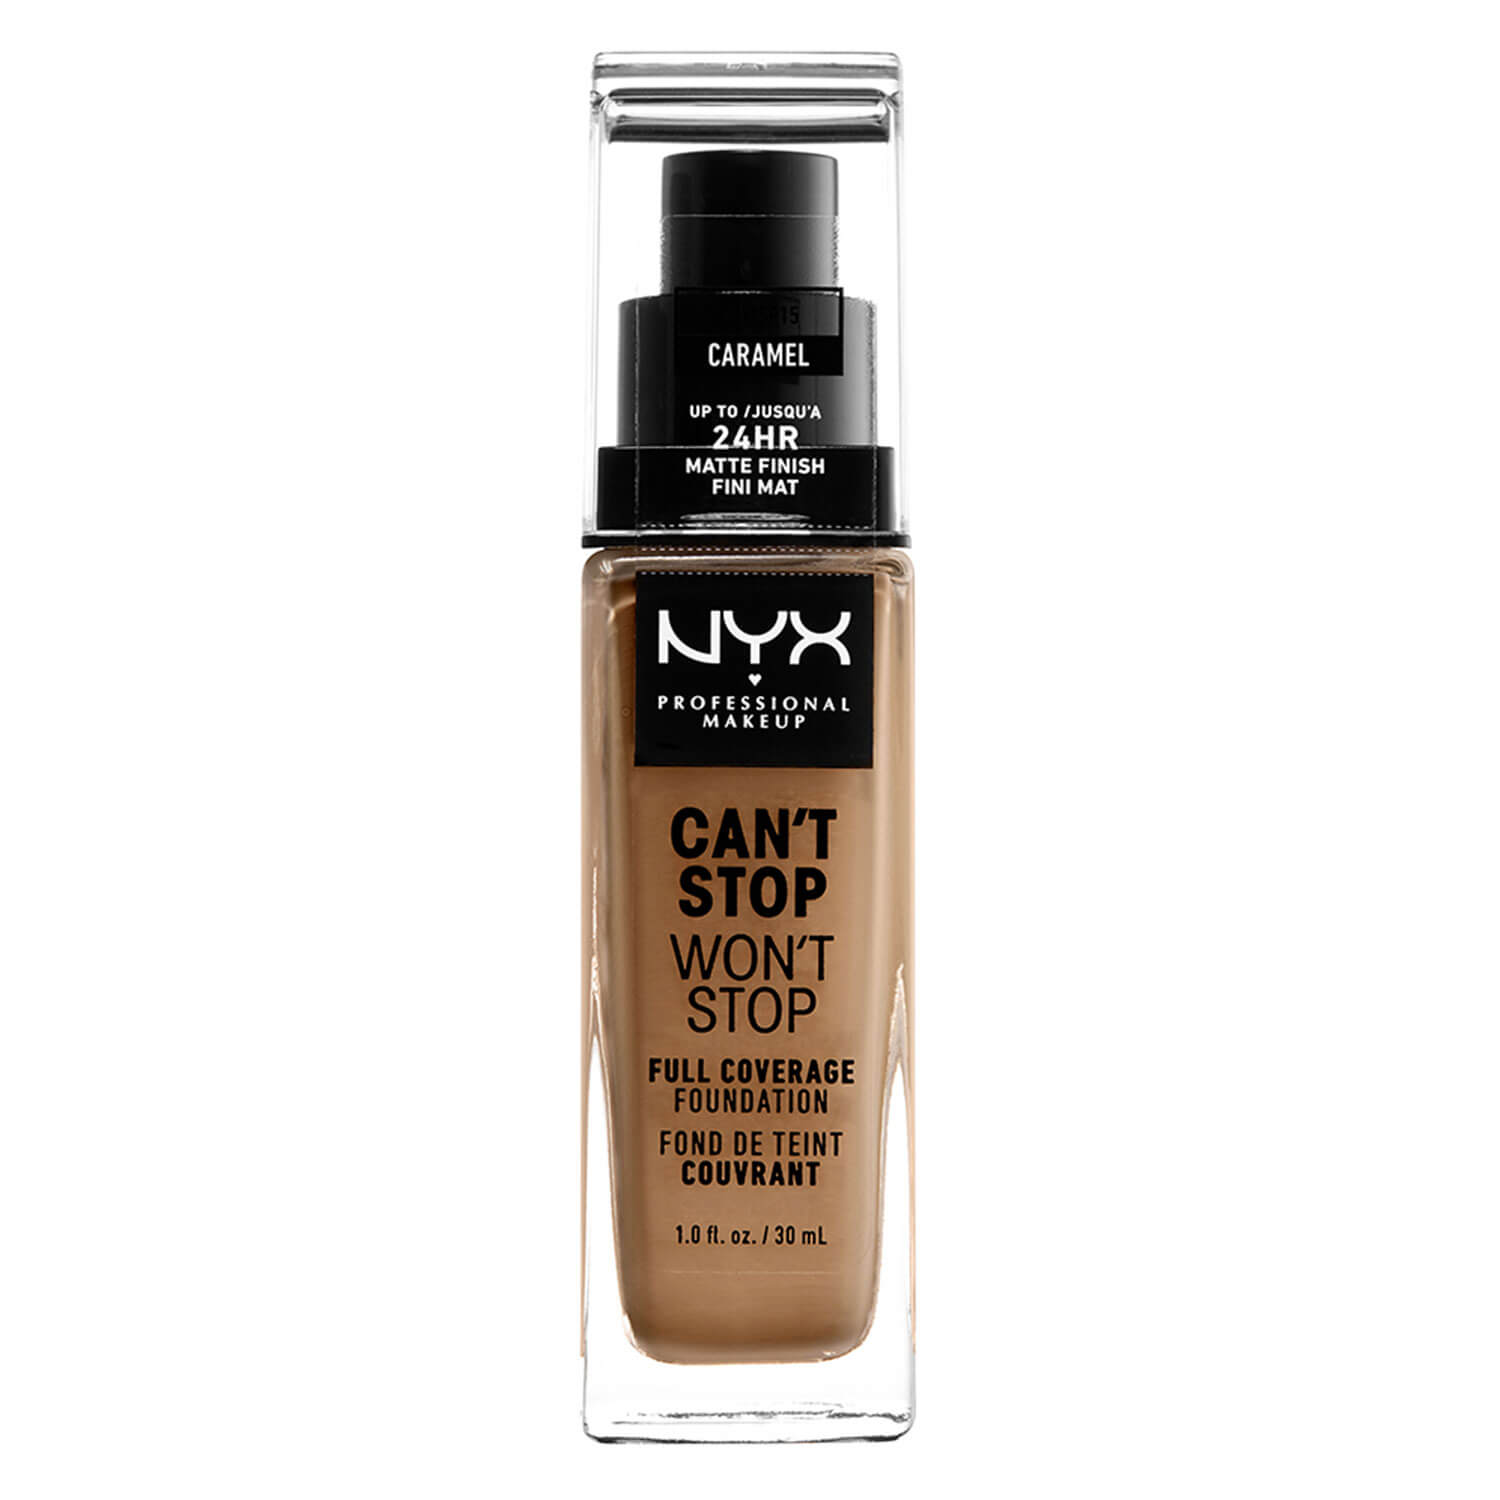 Can't Stop Won't Stop - Full Coverage Foundation Caramel